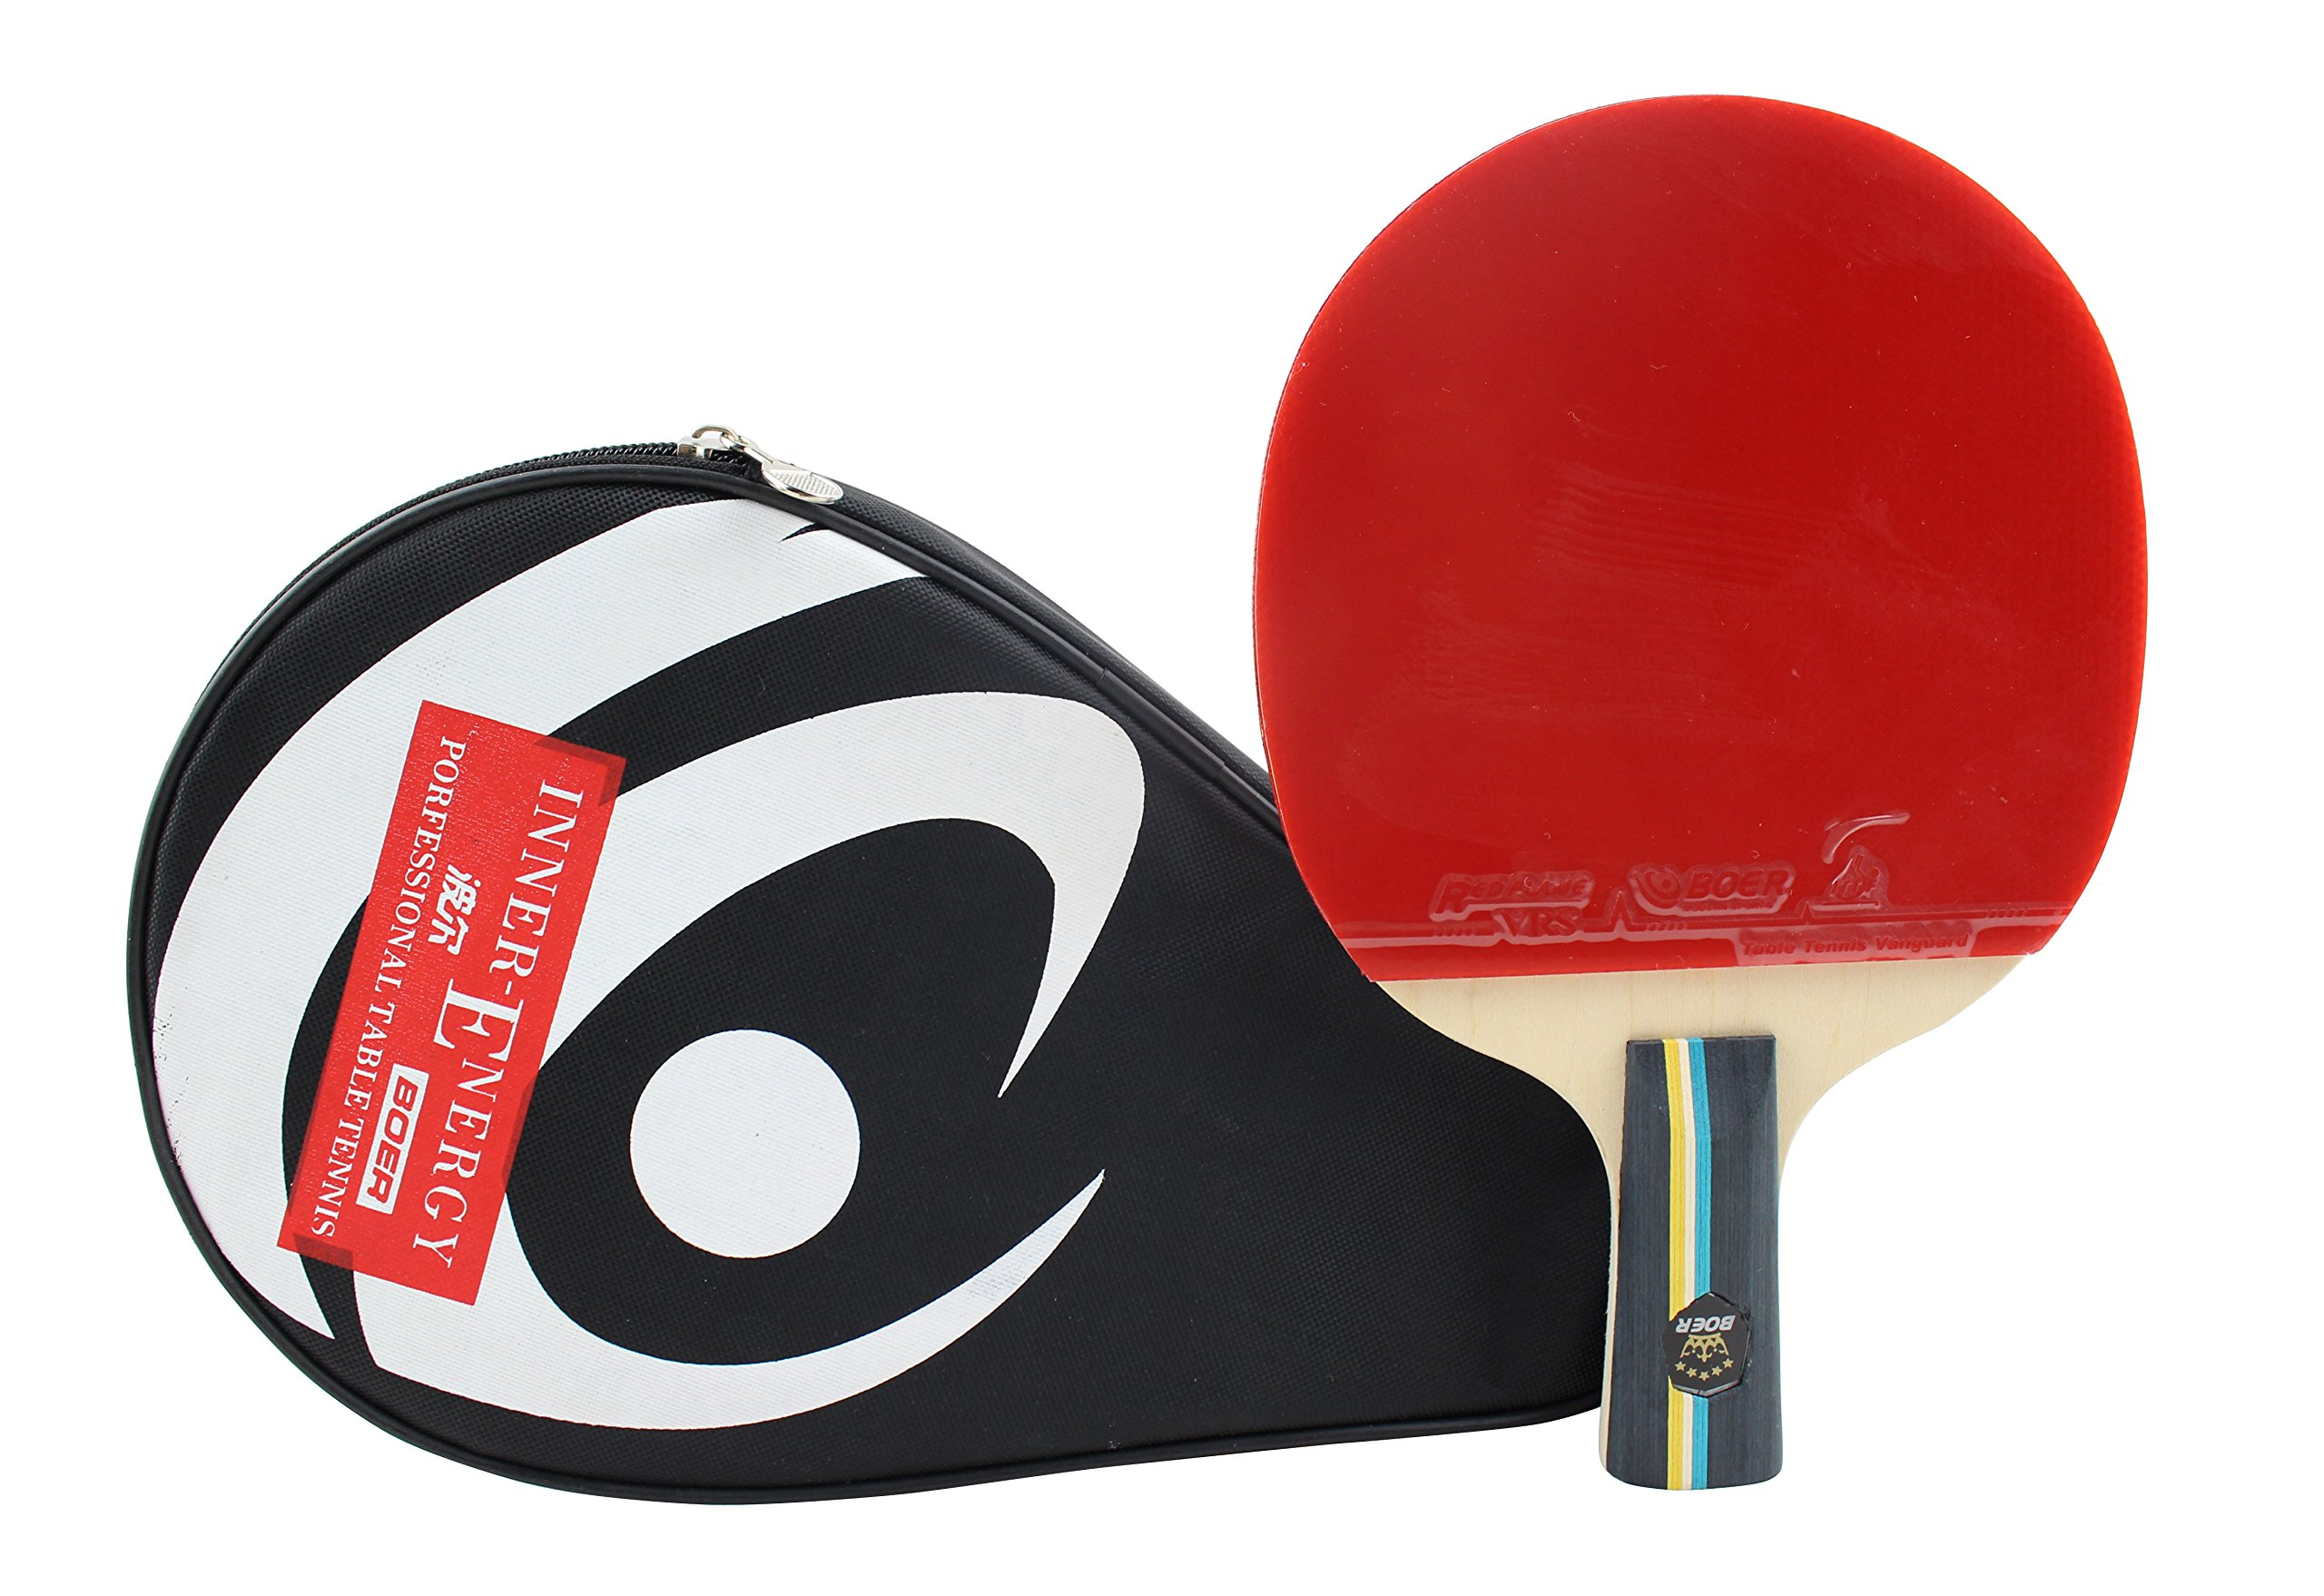 Larsuyar Advanced Trainning Table Tennis Paddle with Carrying Bag- 7 ply Wooden Blade with Short Handle (2 Star Penhold Racket)